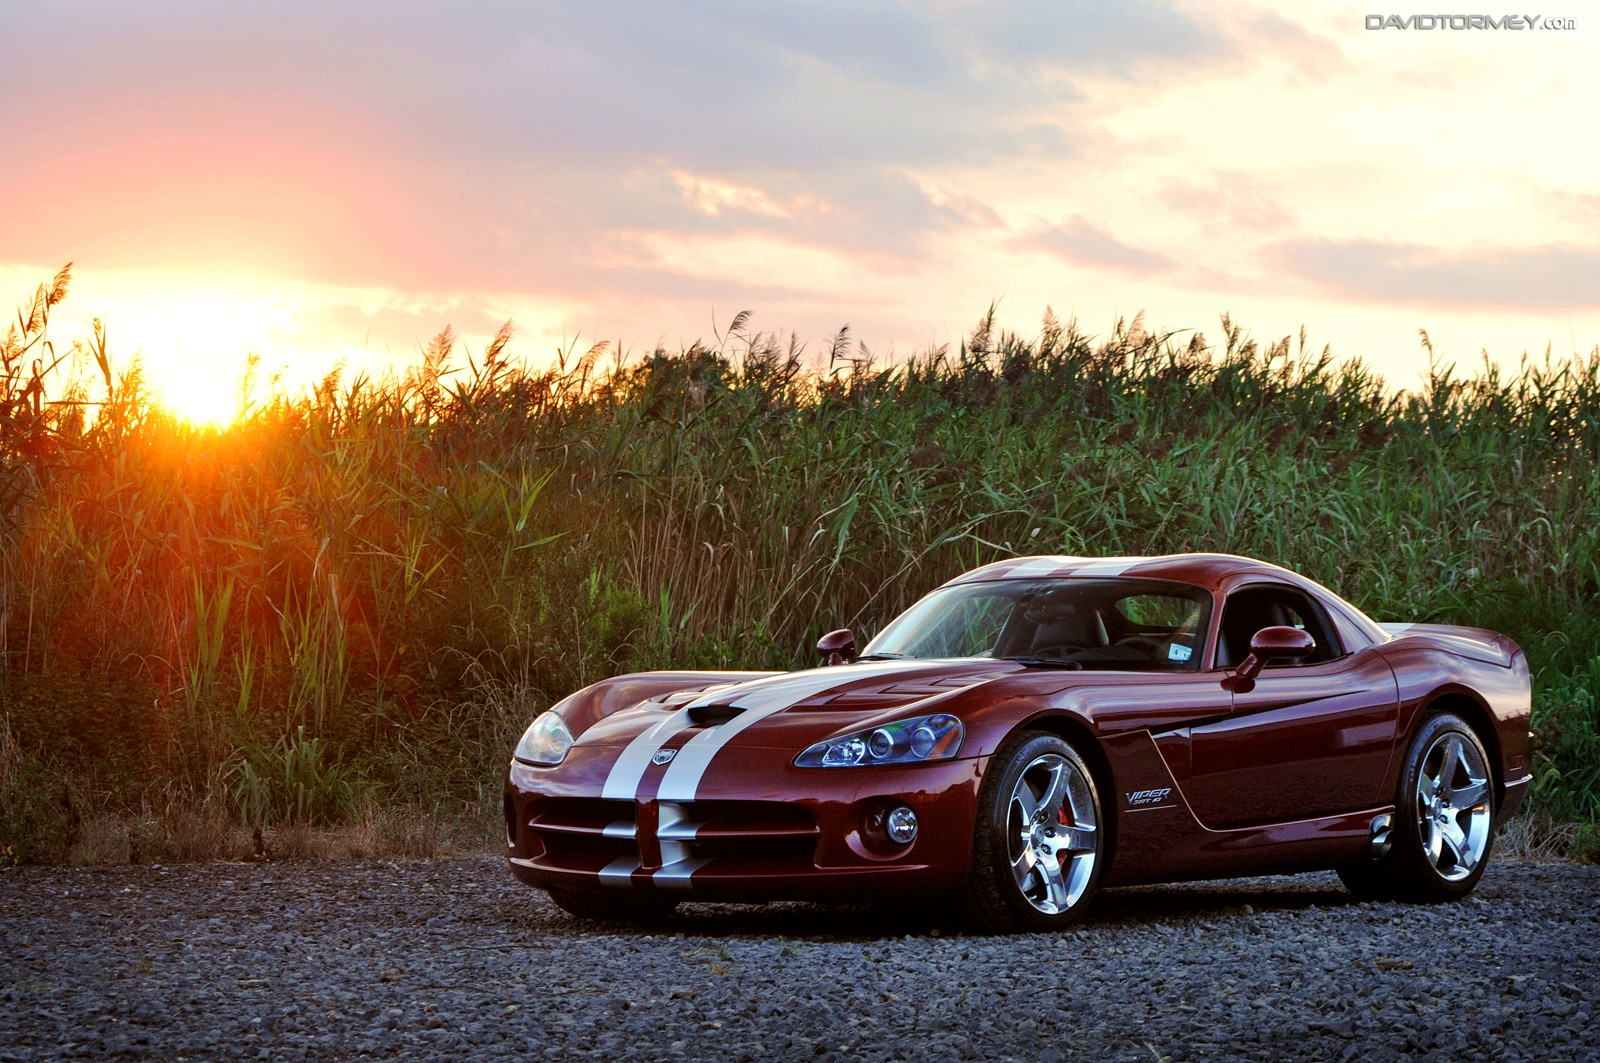 3d Car Wallpaper Full Hd Car Dodge Viper Wallpapers Hd Desktop And Mobile